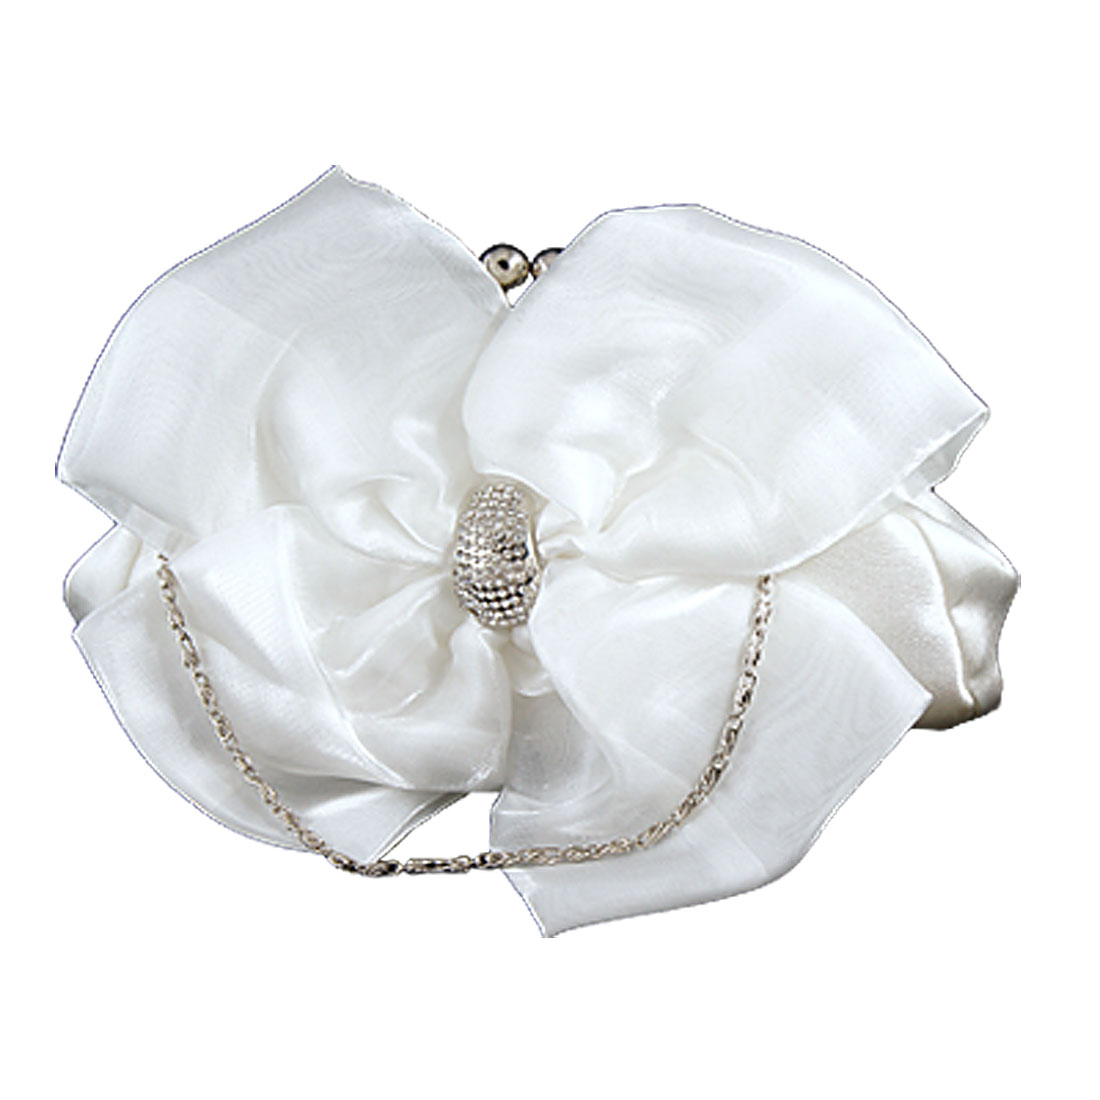 Chain Strap Rhinestone Inlaid Bowknot Evening Handbag White for Women